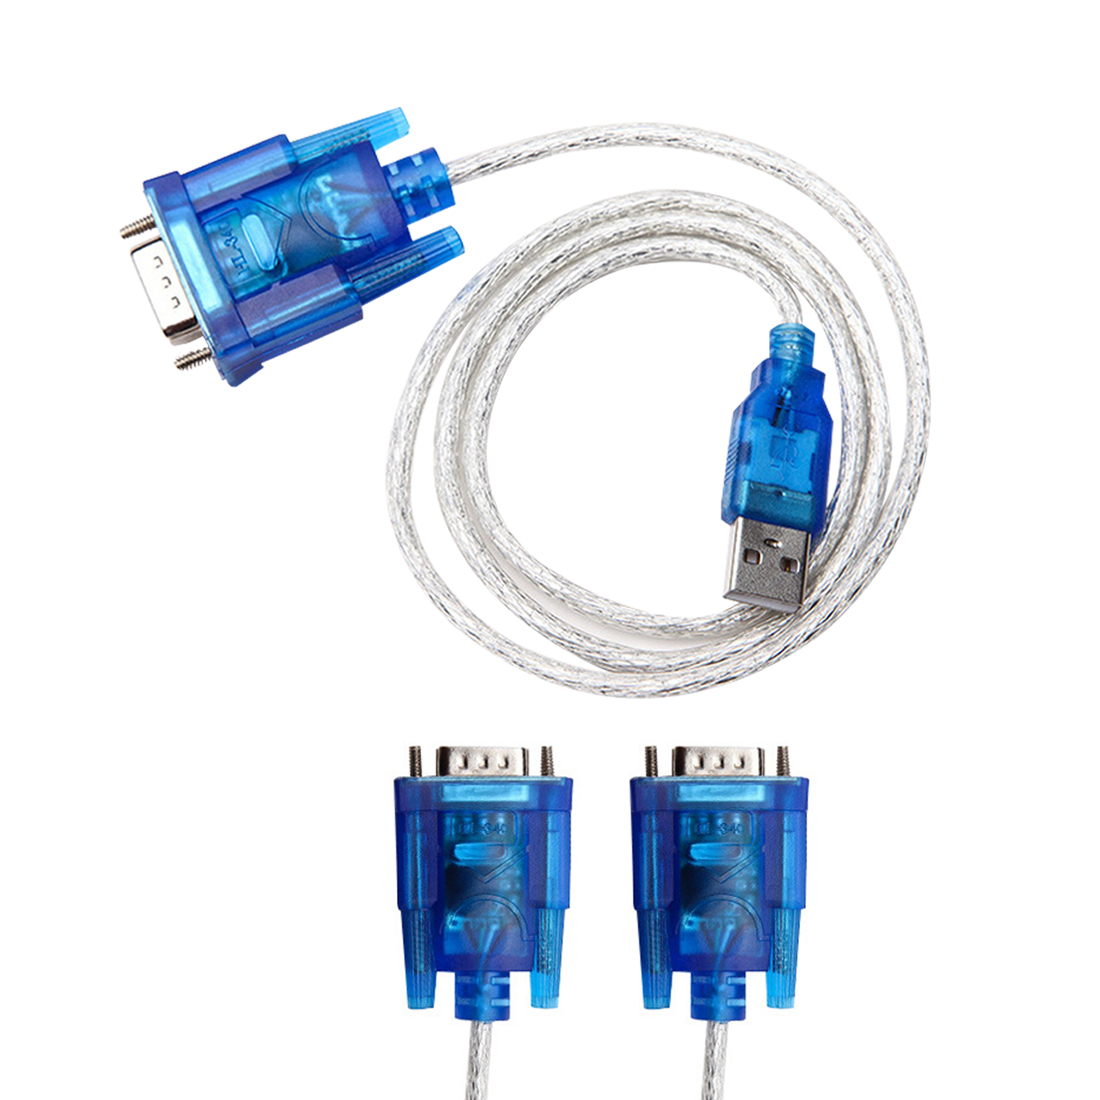 Marsnaska Hot Selling 1PC 80cm USB 2.0 to RS232 COM Port Serial PDA 9 pin DB9 Cable Male to Male M/M Adapter for PC PDA GPS usb to rs232 female com port serial pda 9 db9 pin cable adapter prolific for win10 win8 mac os x 10 6 usb rs232 com pl2303